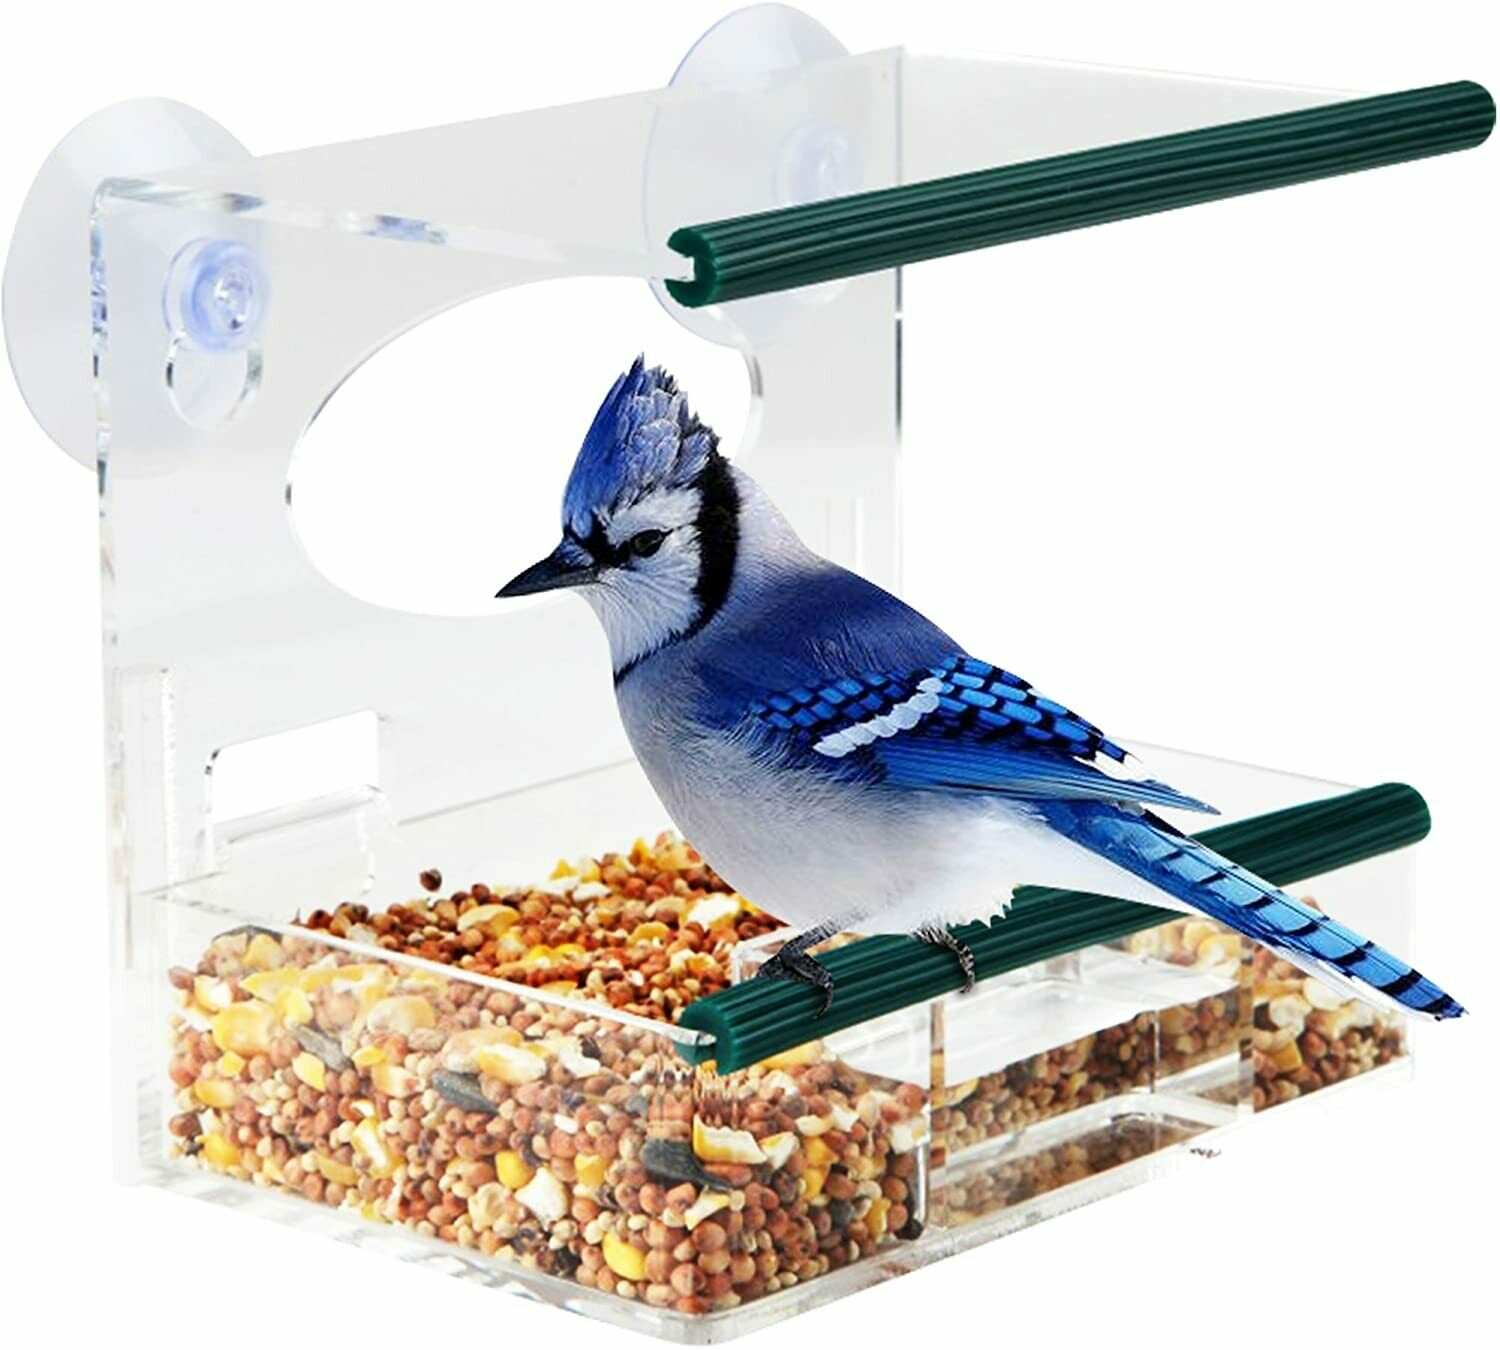 Image 1 - Window-Bird-Feeder-for-Outside-with-Strong-Suction-Cups-amp-Removable-Tray